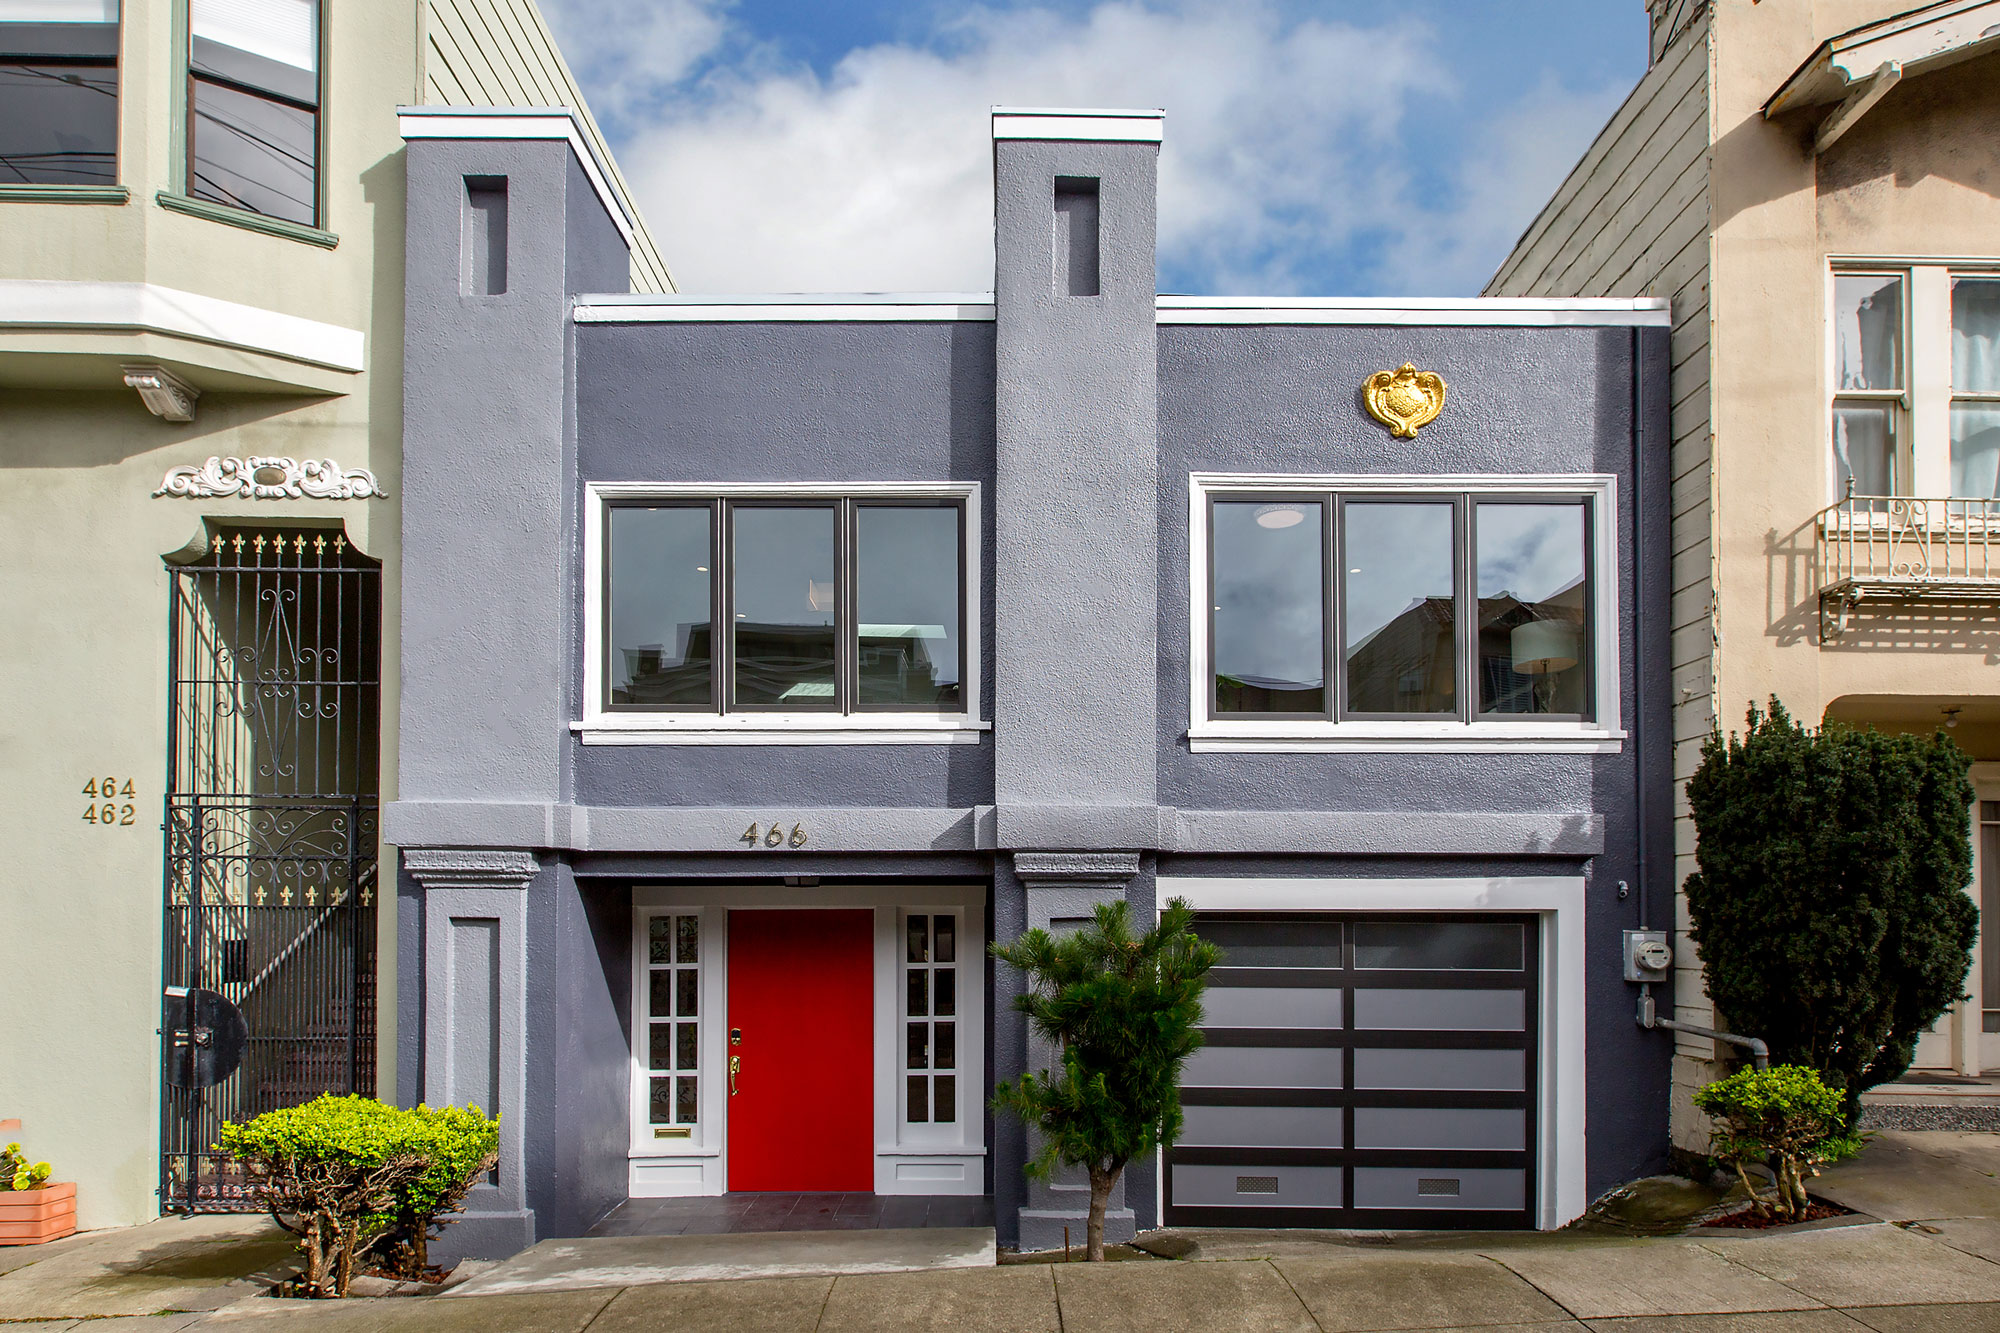 $2,150,000 - Seller466 32nd AvenueSan Francisco